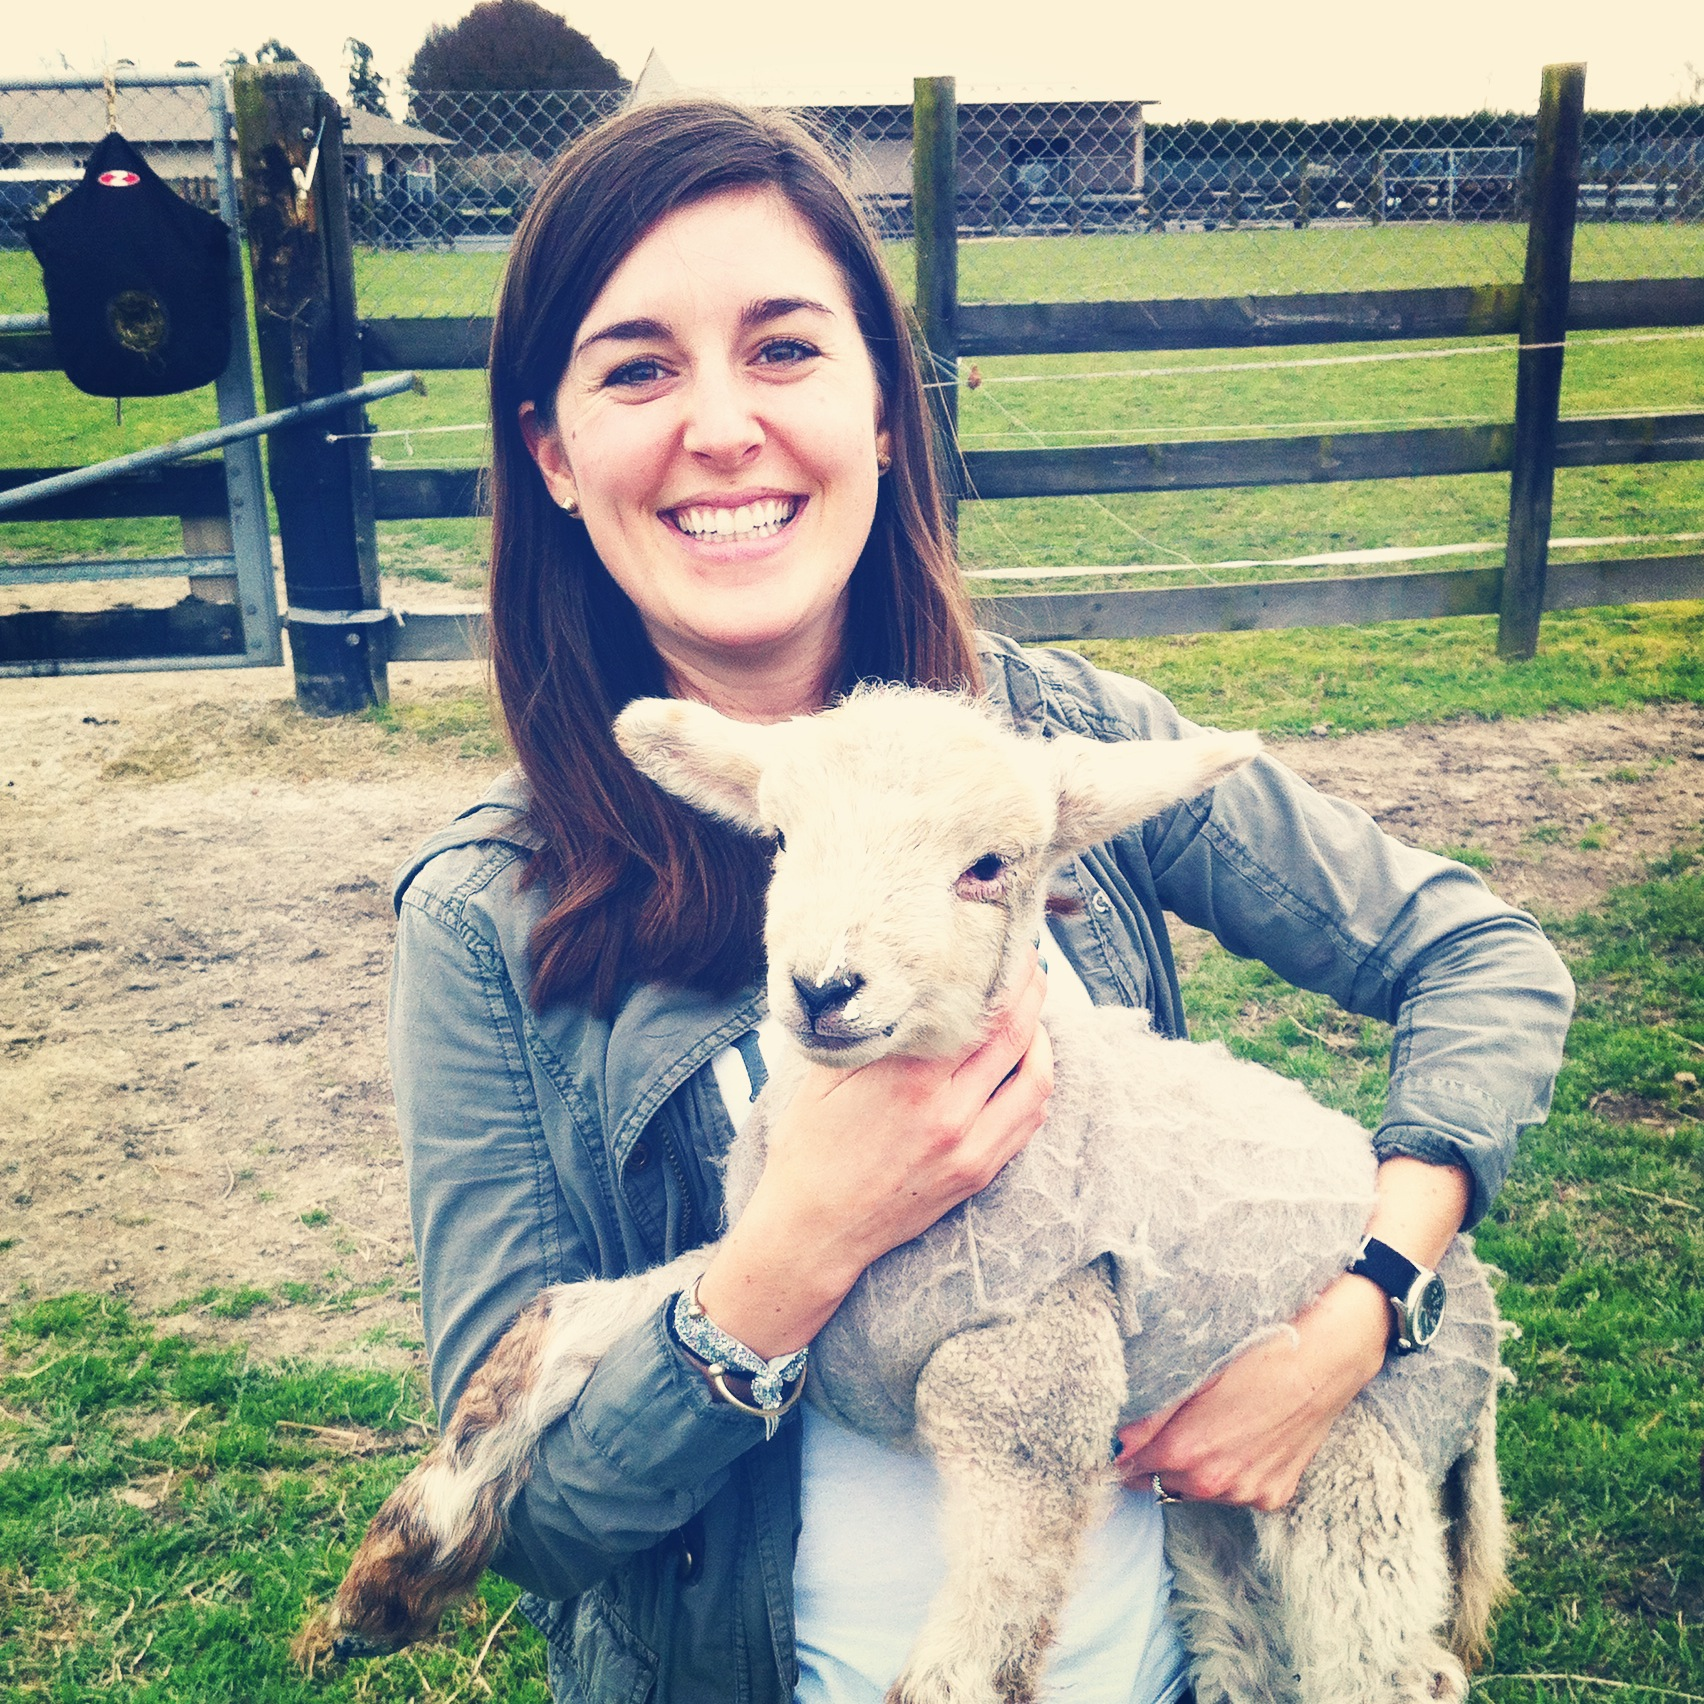 After months of 'sheep stalking' and admiring all of the spring lambs around Hawke's Bay, I finally got the opportunity to hold and feed a little lamb when my friend Charlotte invited Joe and me to see her neighbor's new lambs. They're just too cute!